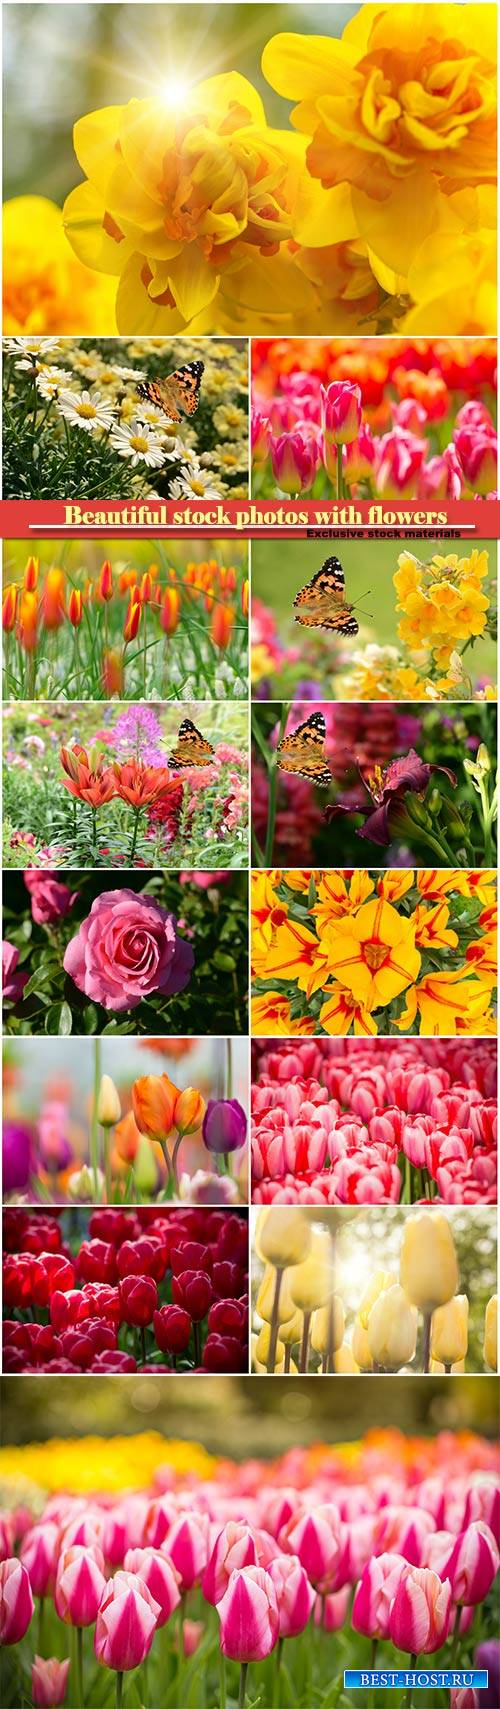 Beautiful stock photos with flowers, tulips, roses, daffodils, chamomiles